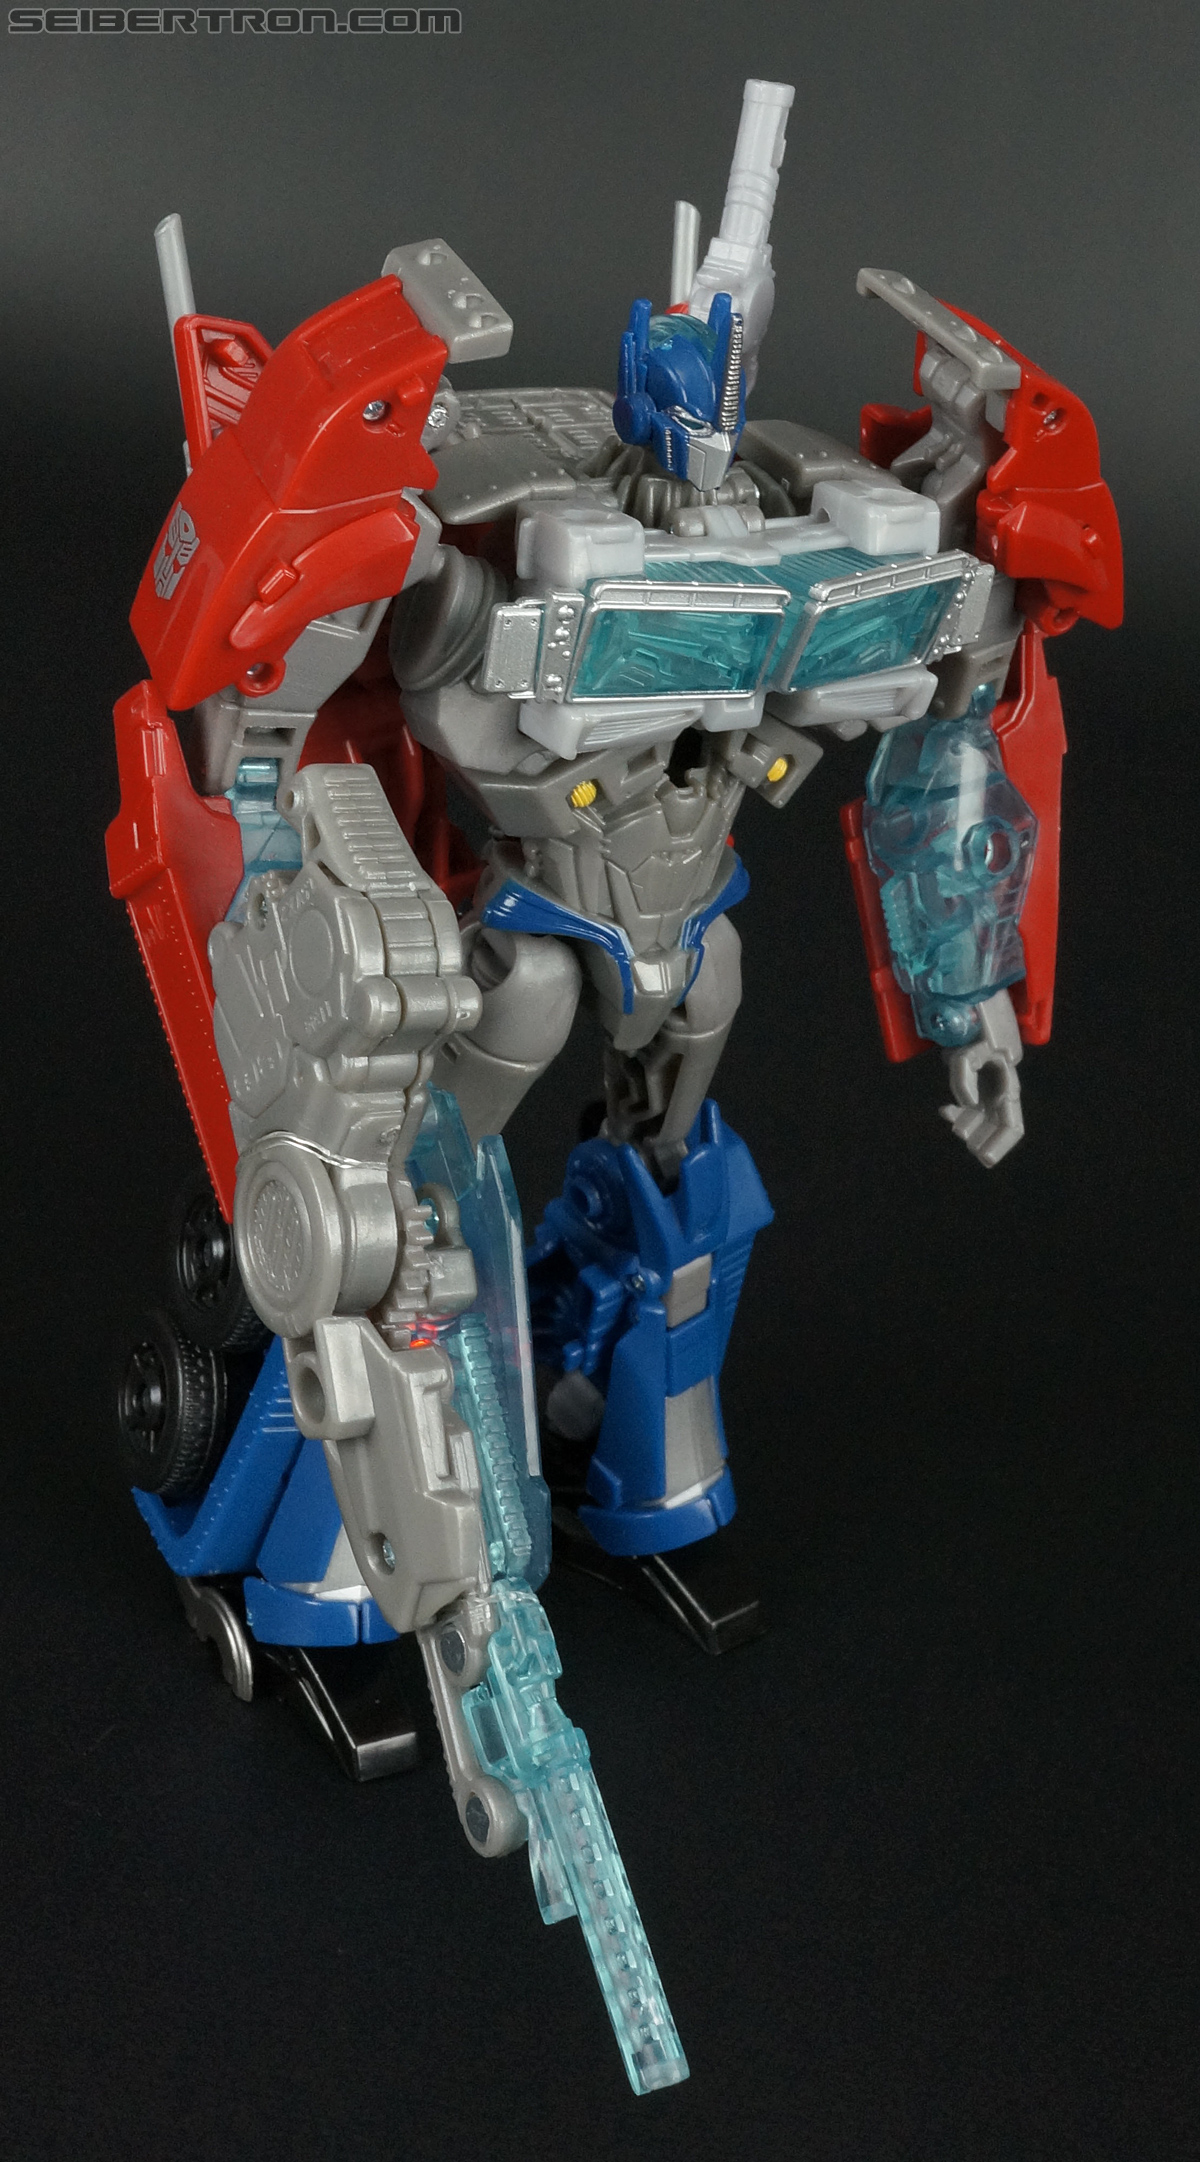 Transformers Prime: Robots In Disguise Optimus Prime (Image #84 of 176)